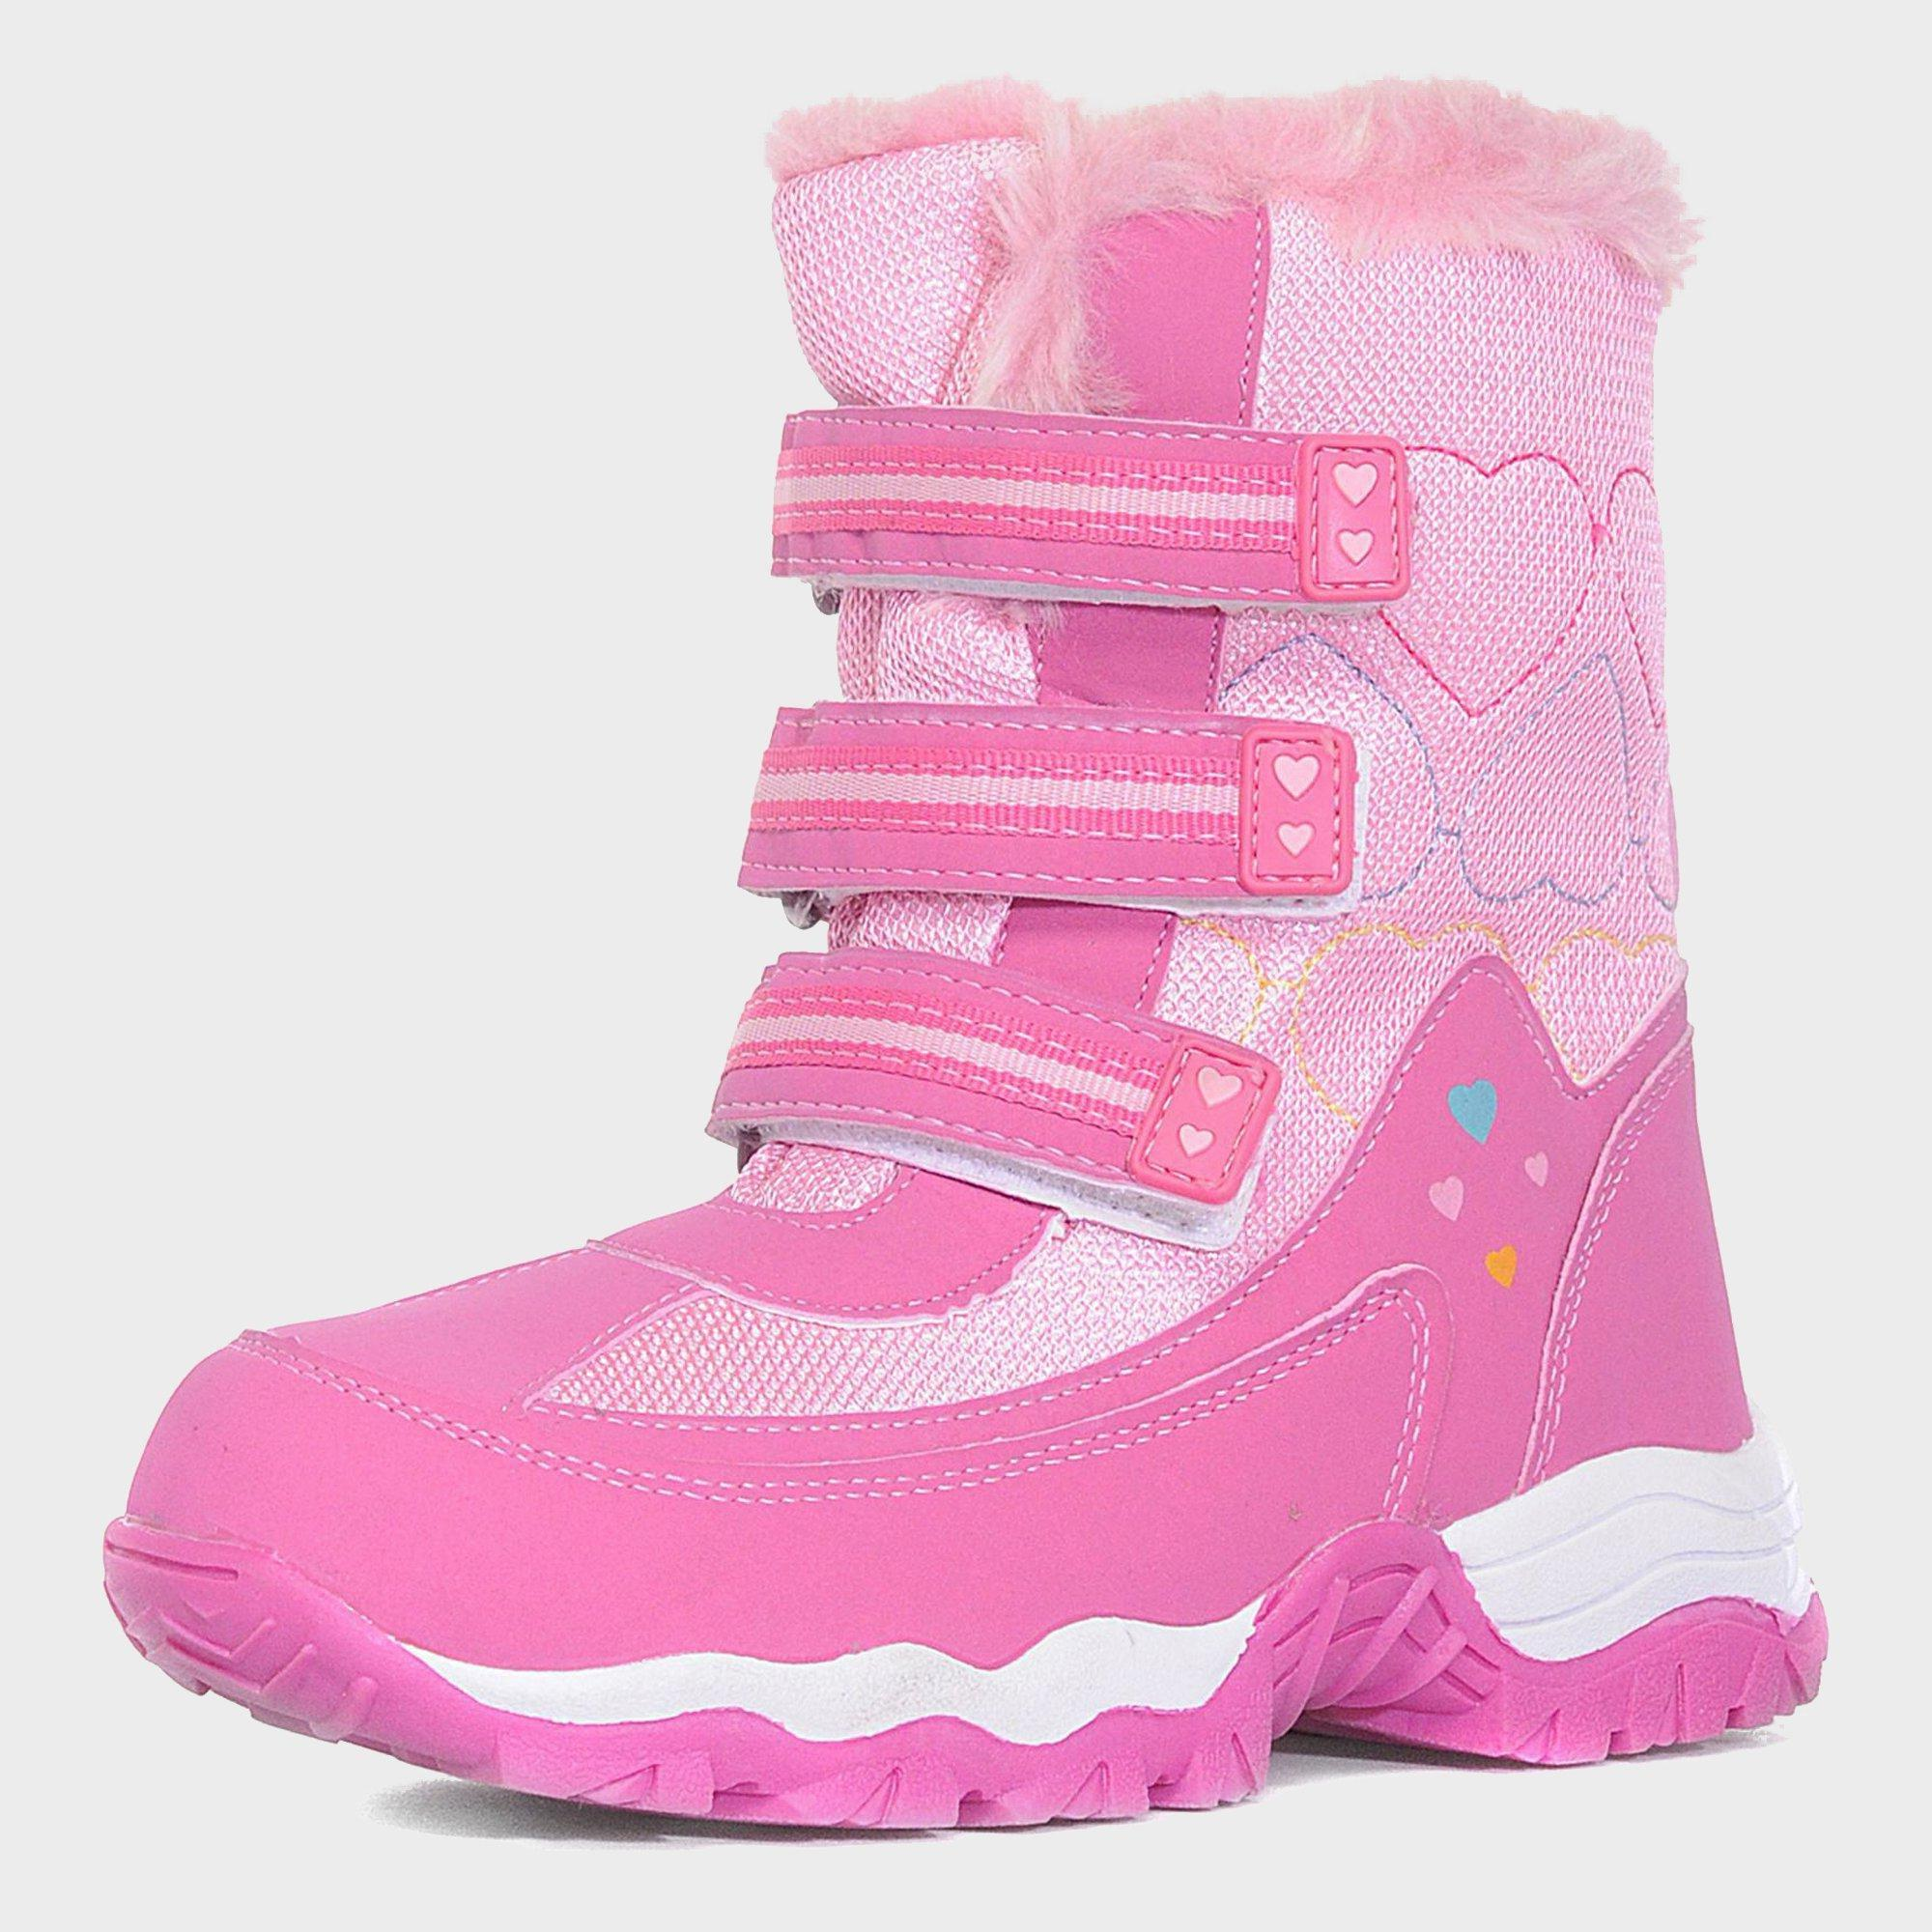 Alpine Girls Fur Snow Boots Pink